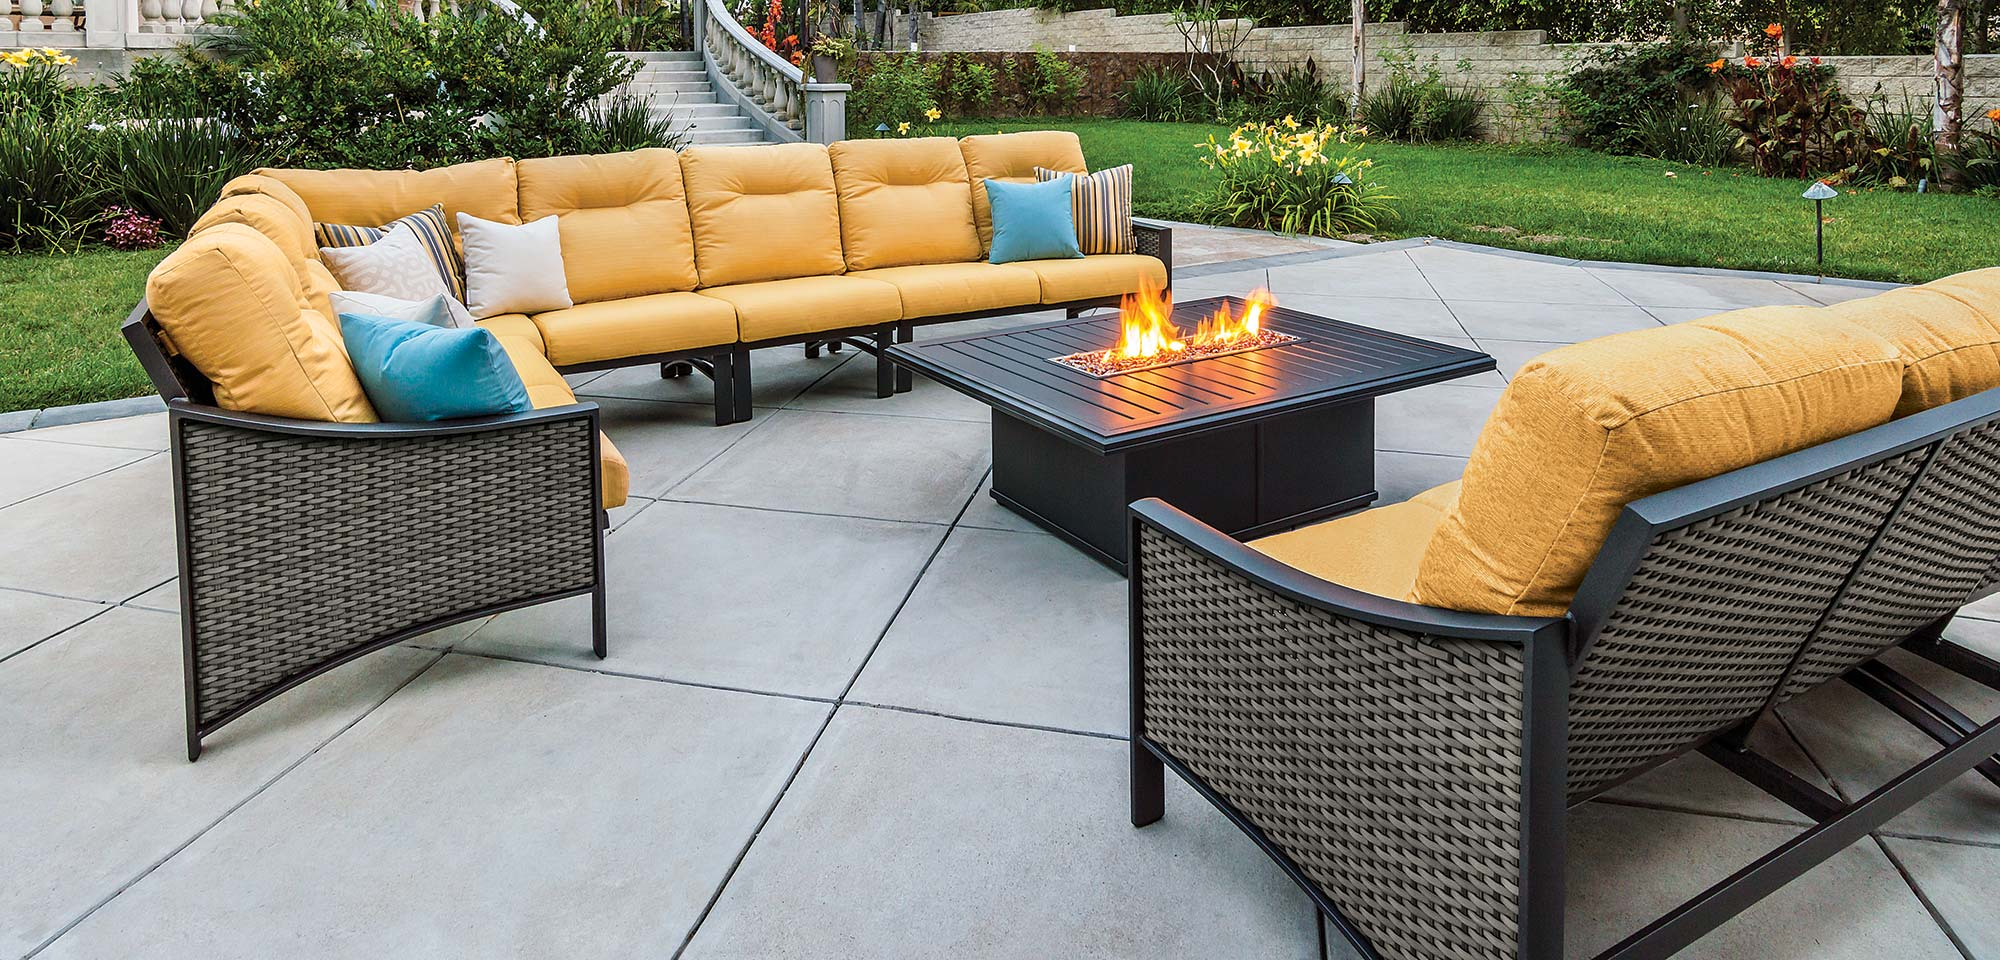 Patio furniture outdoor patio furniture sets for Outdoor patio couch set